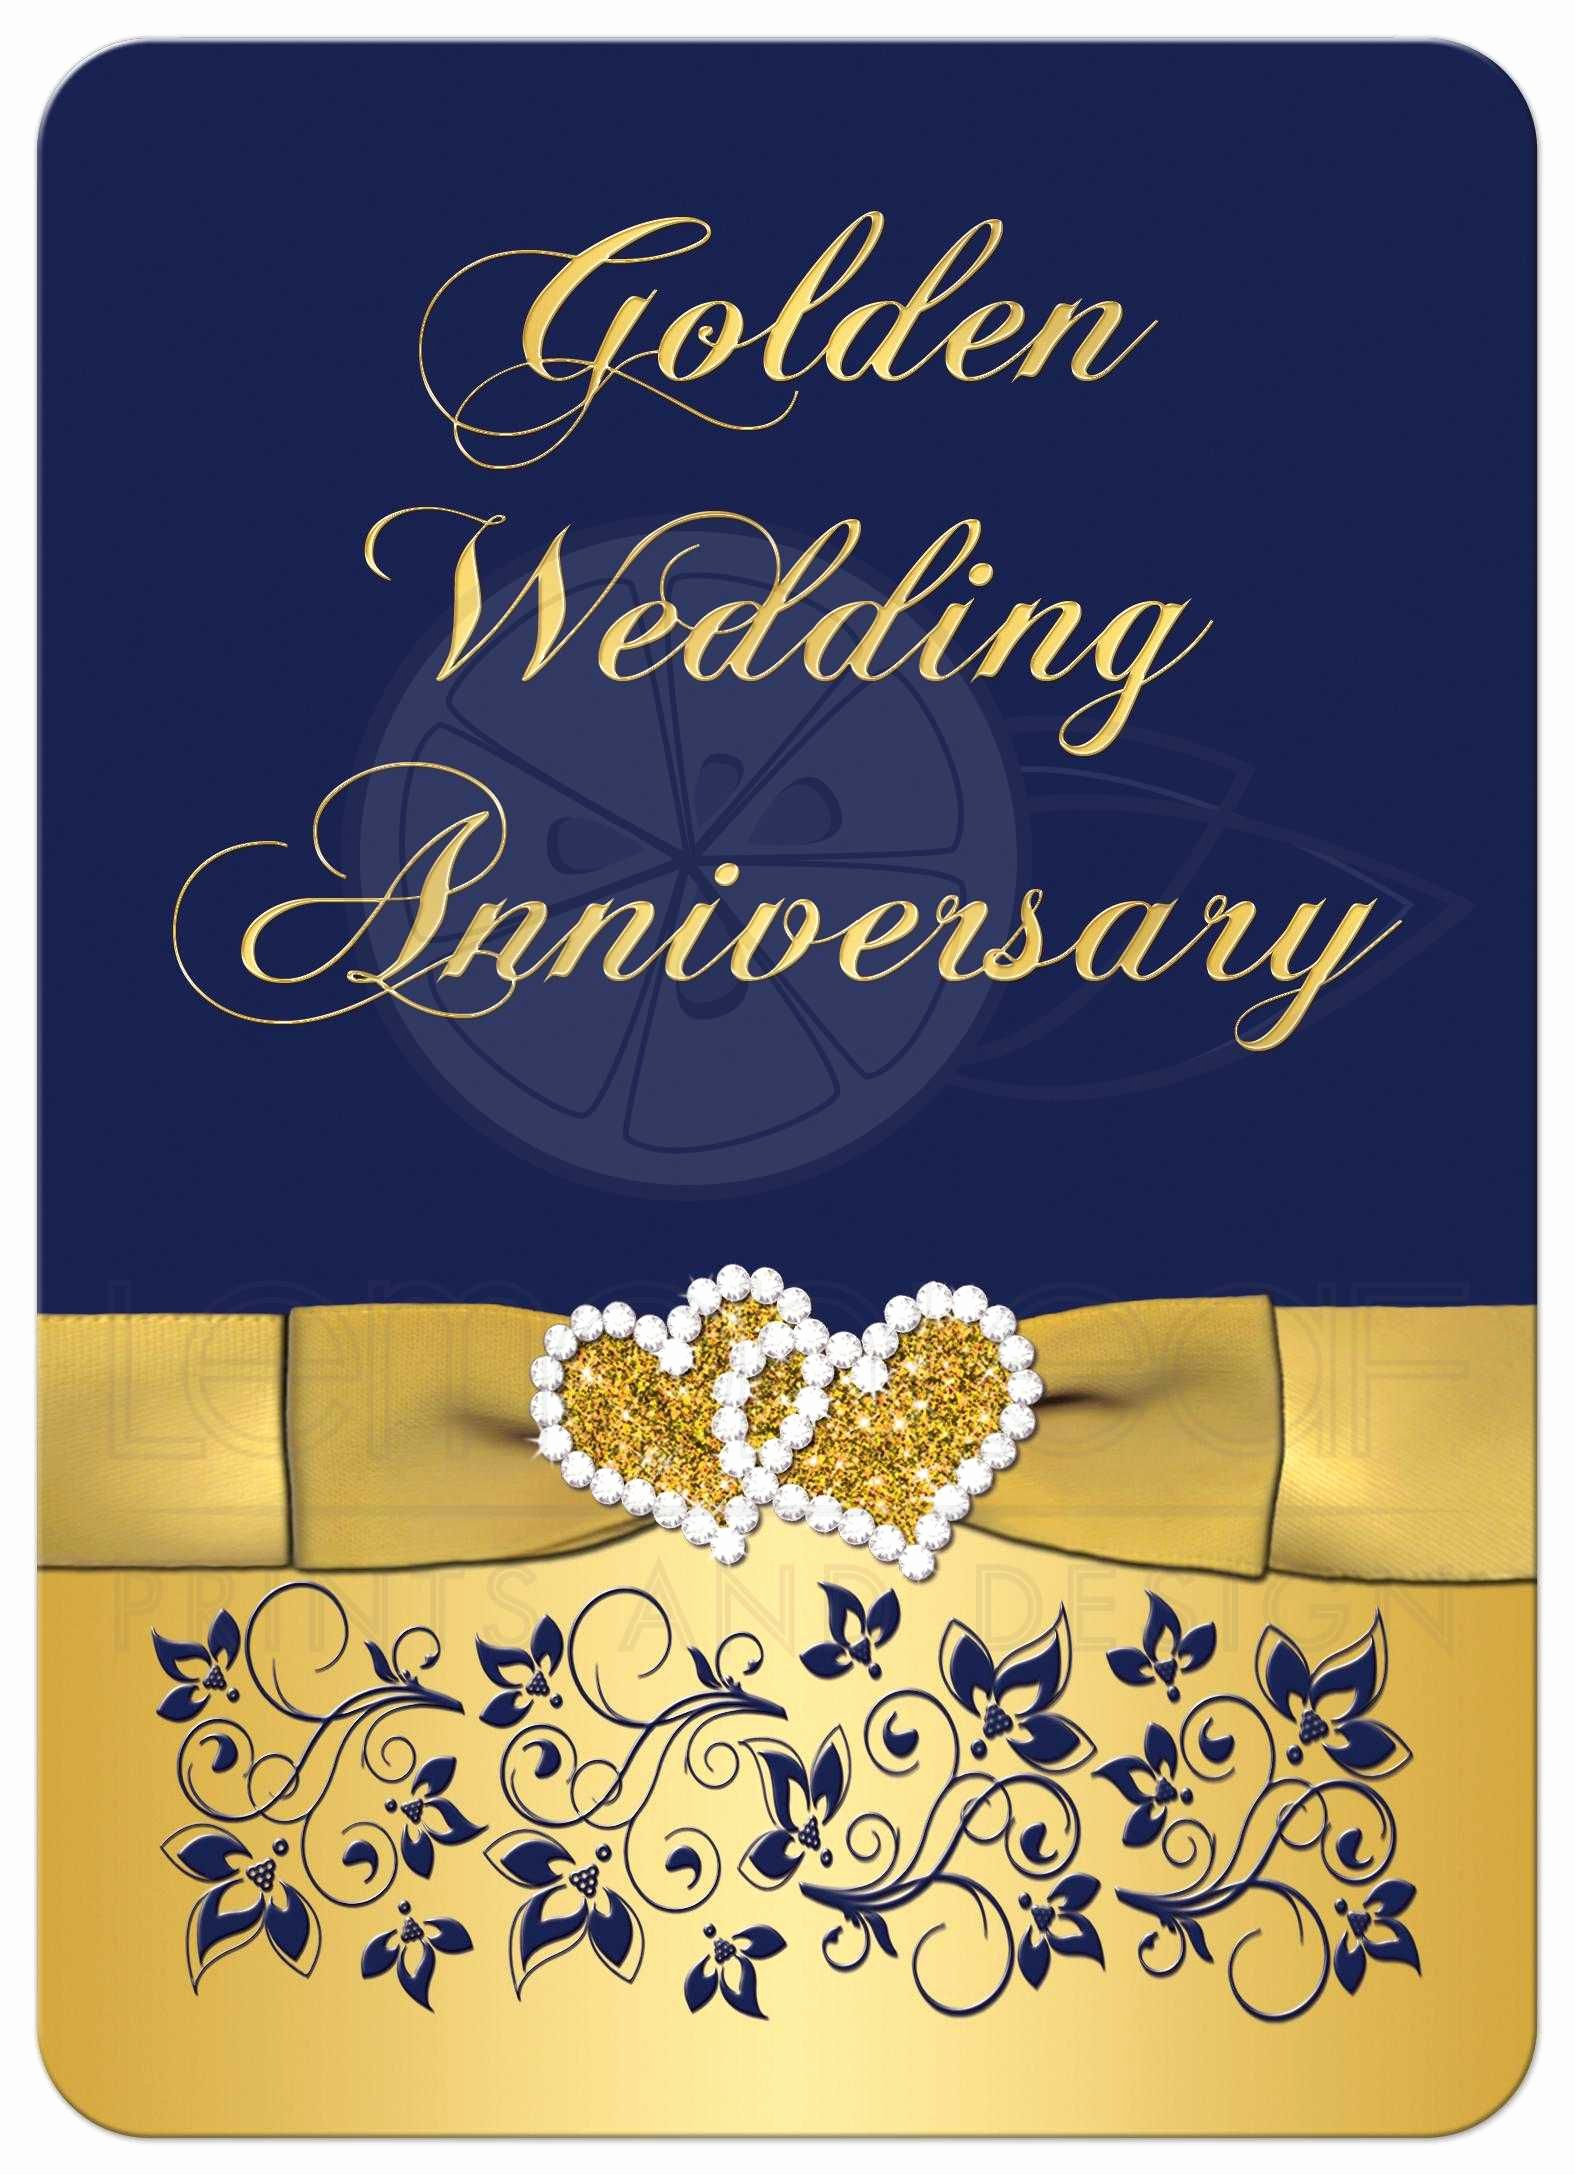 Wedding Anniversary Invite Template New Golden Wedding Anniversary Invitation Golden Wedding Anniversary Invitations Templates